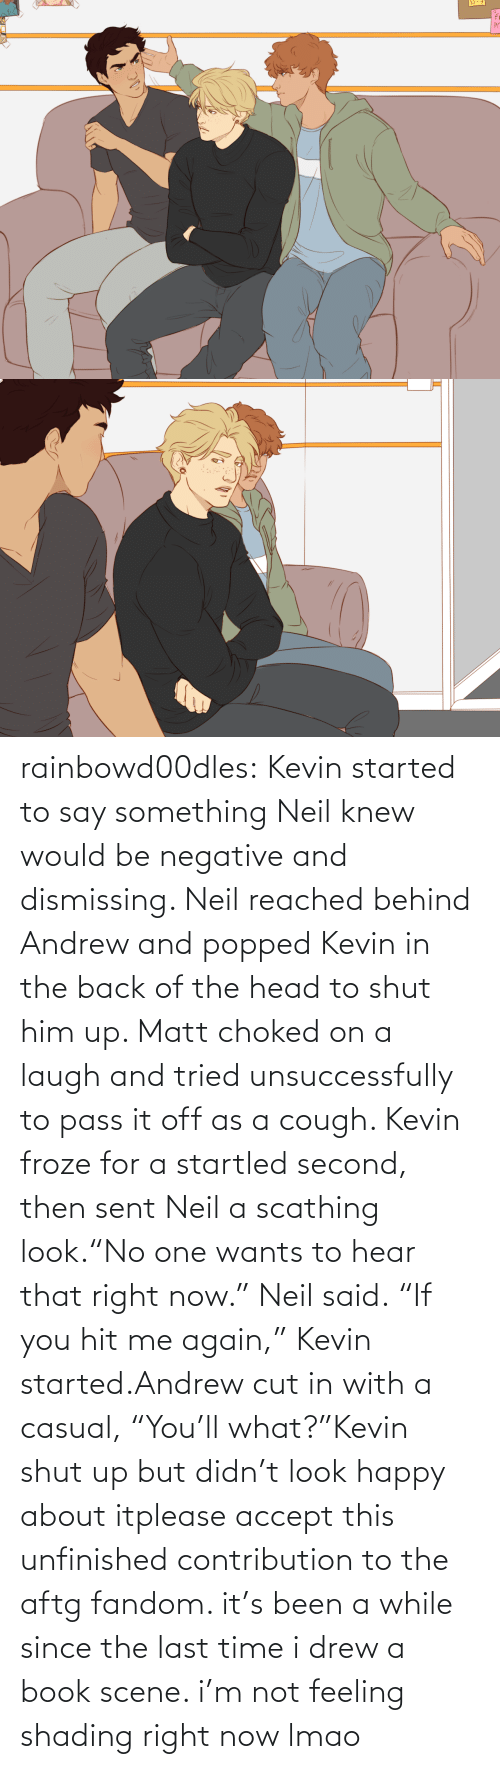 "Head, Lmao, and Shut Up: rainbowd00dles:  Kevin started to say something Neil knew would be negative and dismissing. Neil reached behind Andrew and popped Kevin in the back of the head to shut him up. Matt choked on a laugh and tried unsuccessfully to pass it off as a cough. Kevin froze for a startled second, then sent Neil a scathing look.""No one wants to hear that right now."" Neil said. ""If you hit me again,"" Kevin started.Andrew cut in with a casual, ""You'll what?""Kevin shut up but didn't look happy about itplease accept this unfinished contribution to the aftg fandom. it's been a while since the last time i drew a book scene. i'm not feeling shading right now lmao"